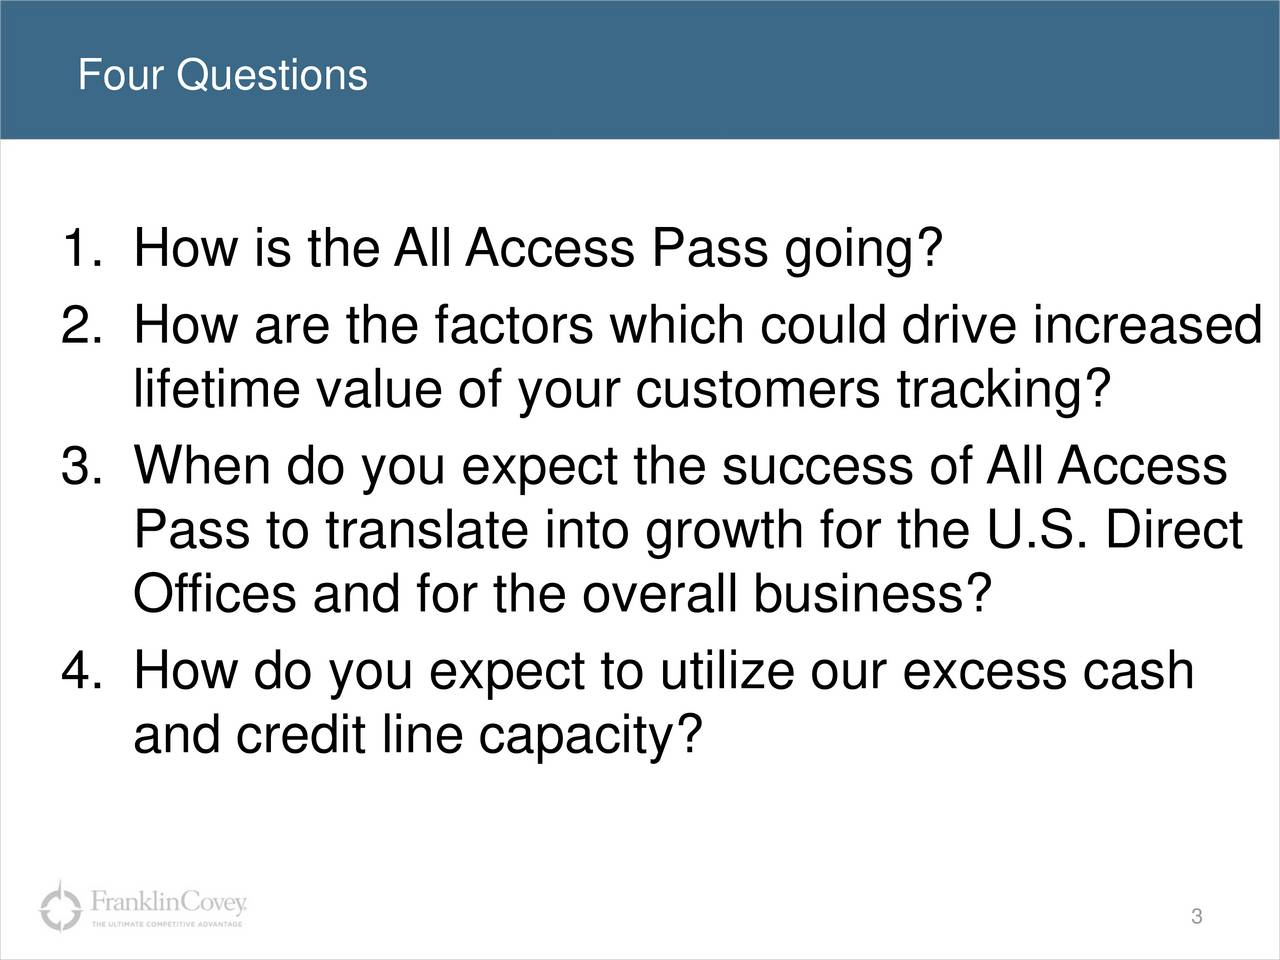 1. How is the All Access Pass going? 2. How are the factors which could drive increased lifetime value of your customers tracking? 3. When do you expect the success of All Access Pass to translate into growth for the U.S. Direct Offices and for the overall business? 4. How do you expect to utilize our excess cash and credit line capacity? 3